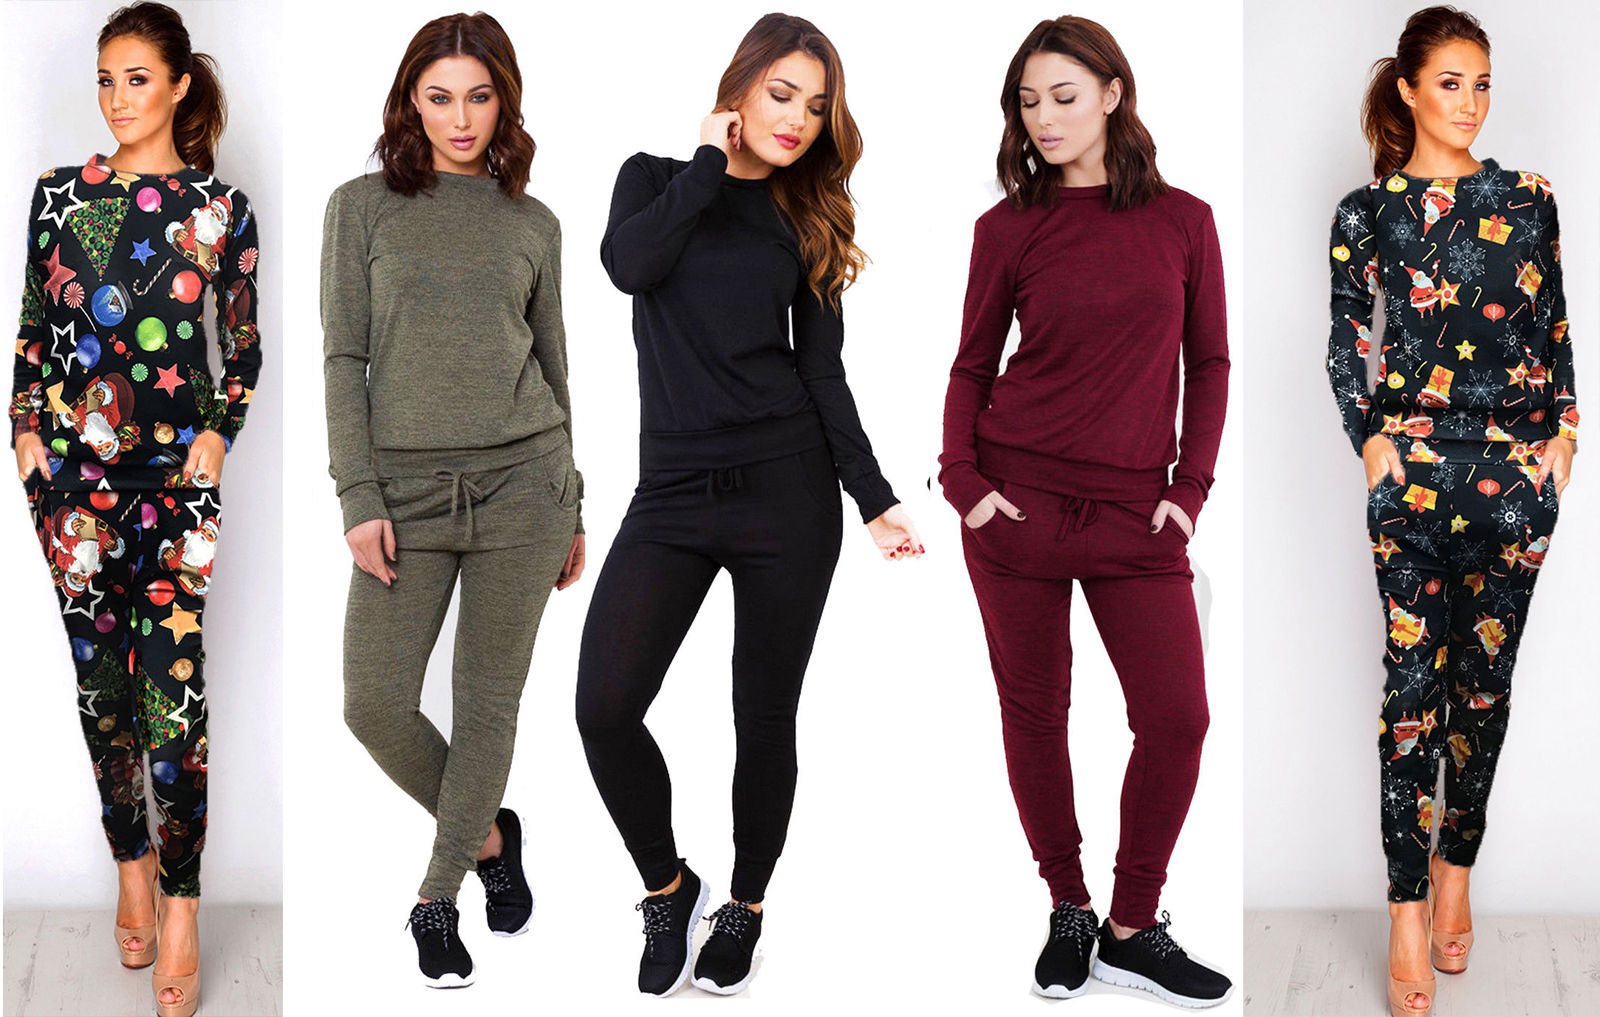 Follow Loungewear Fashion Trend To Grow Your Business - Get Success Ideas!